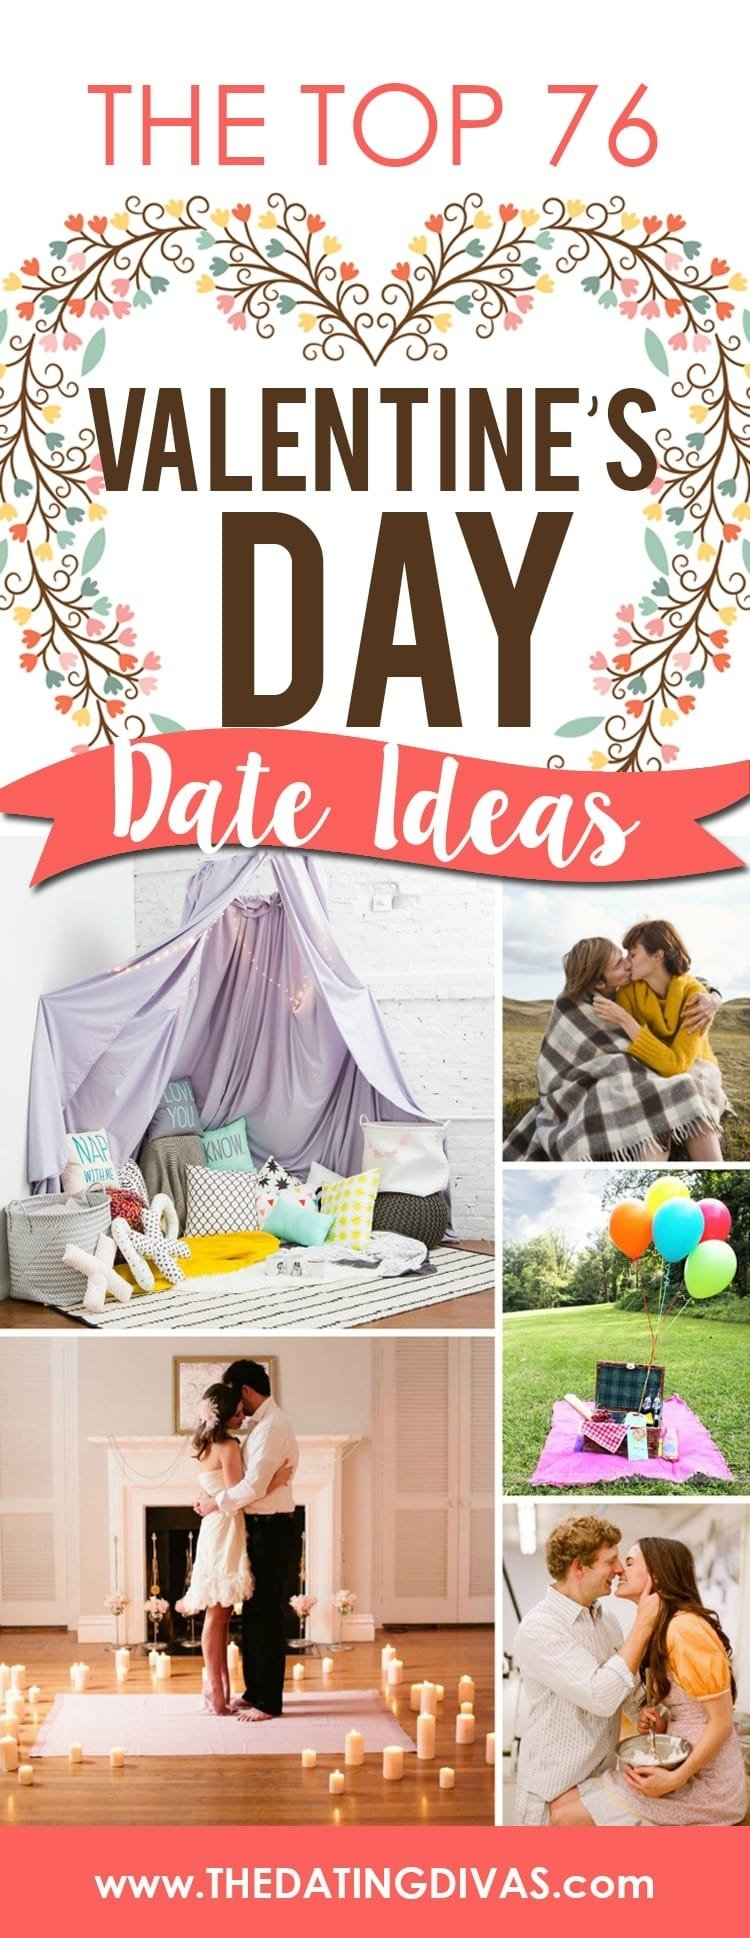 10 Fashionable Date Ideas For Valentines Day the top 76 valentines day date ideas from the dating divas 3 2020